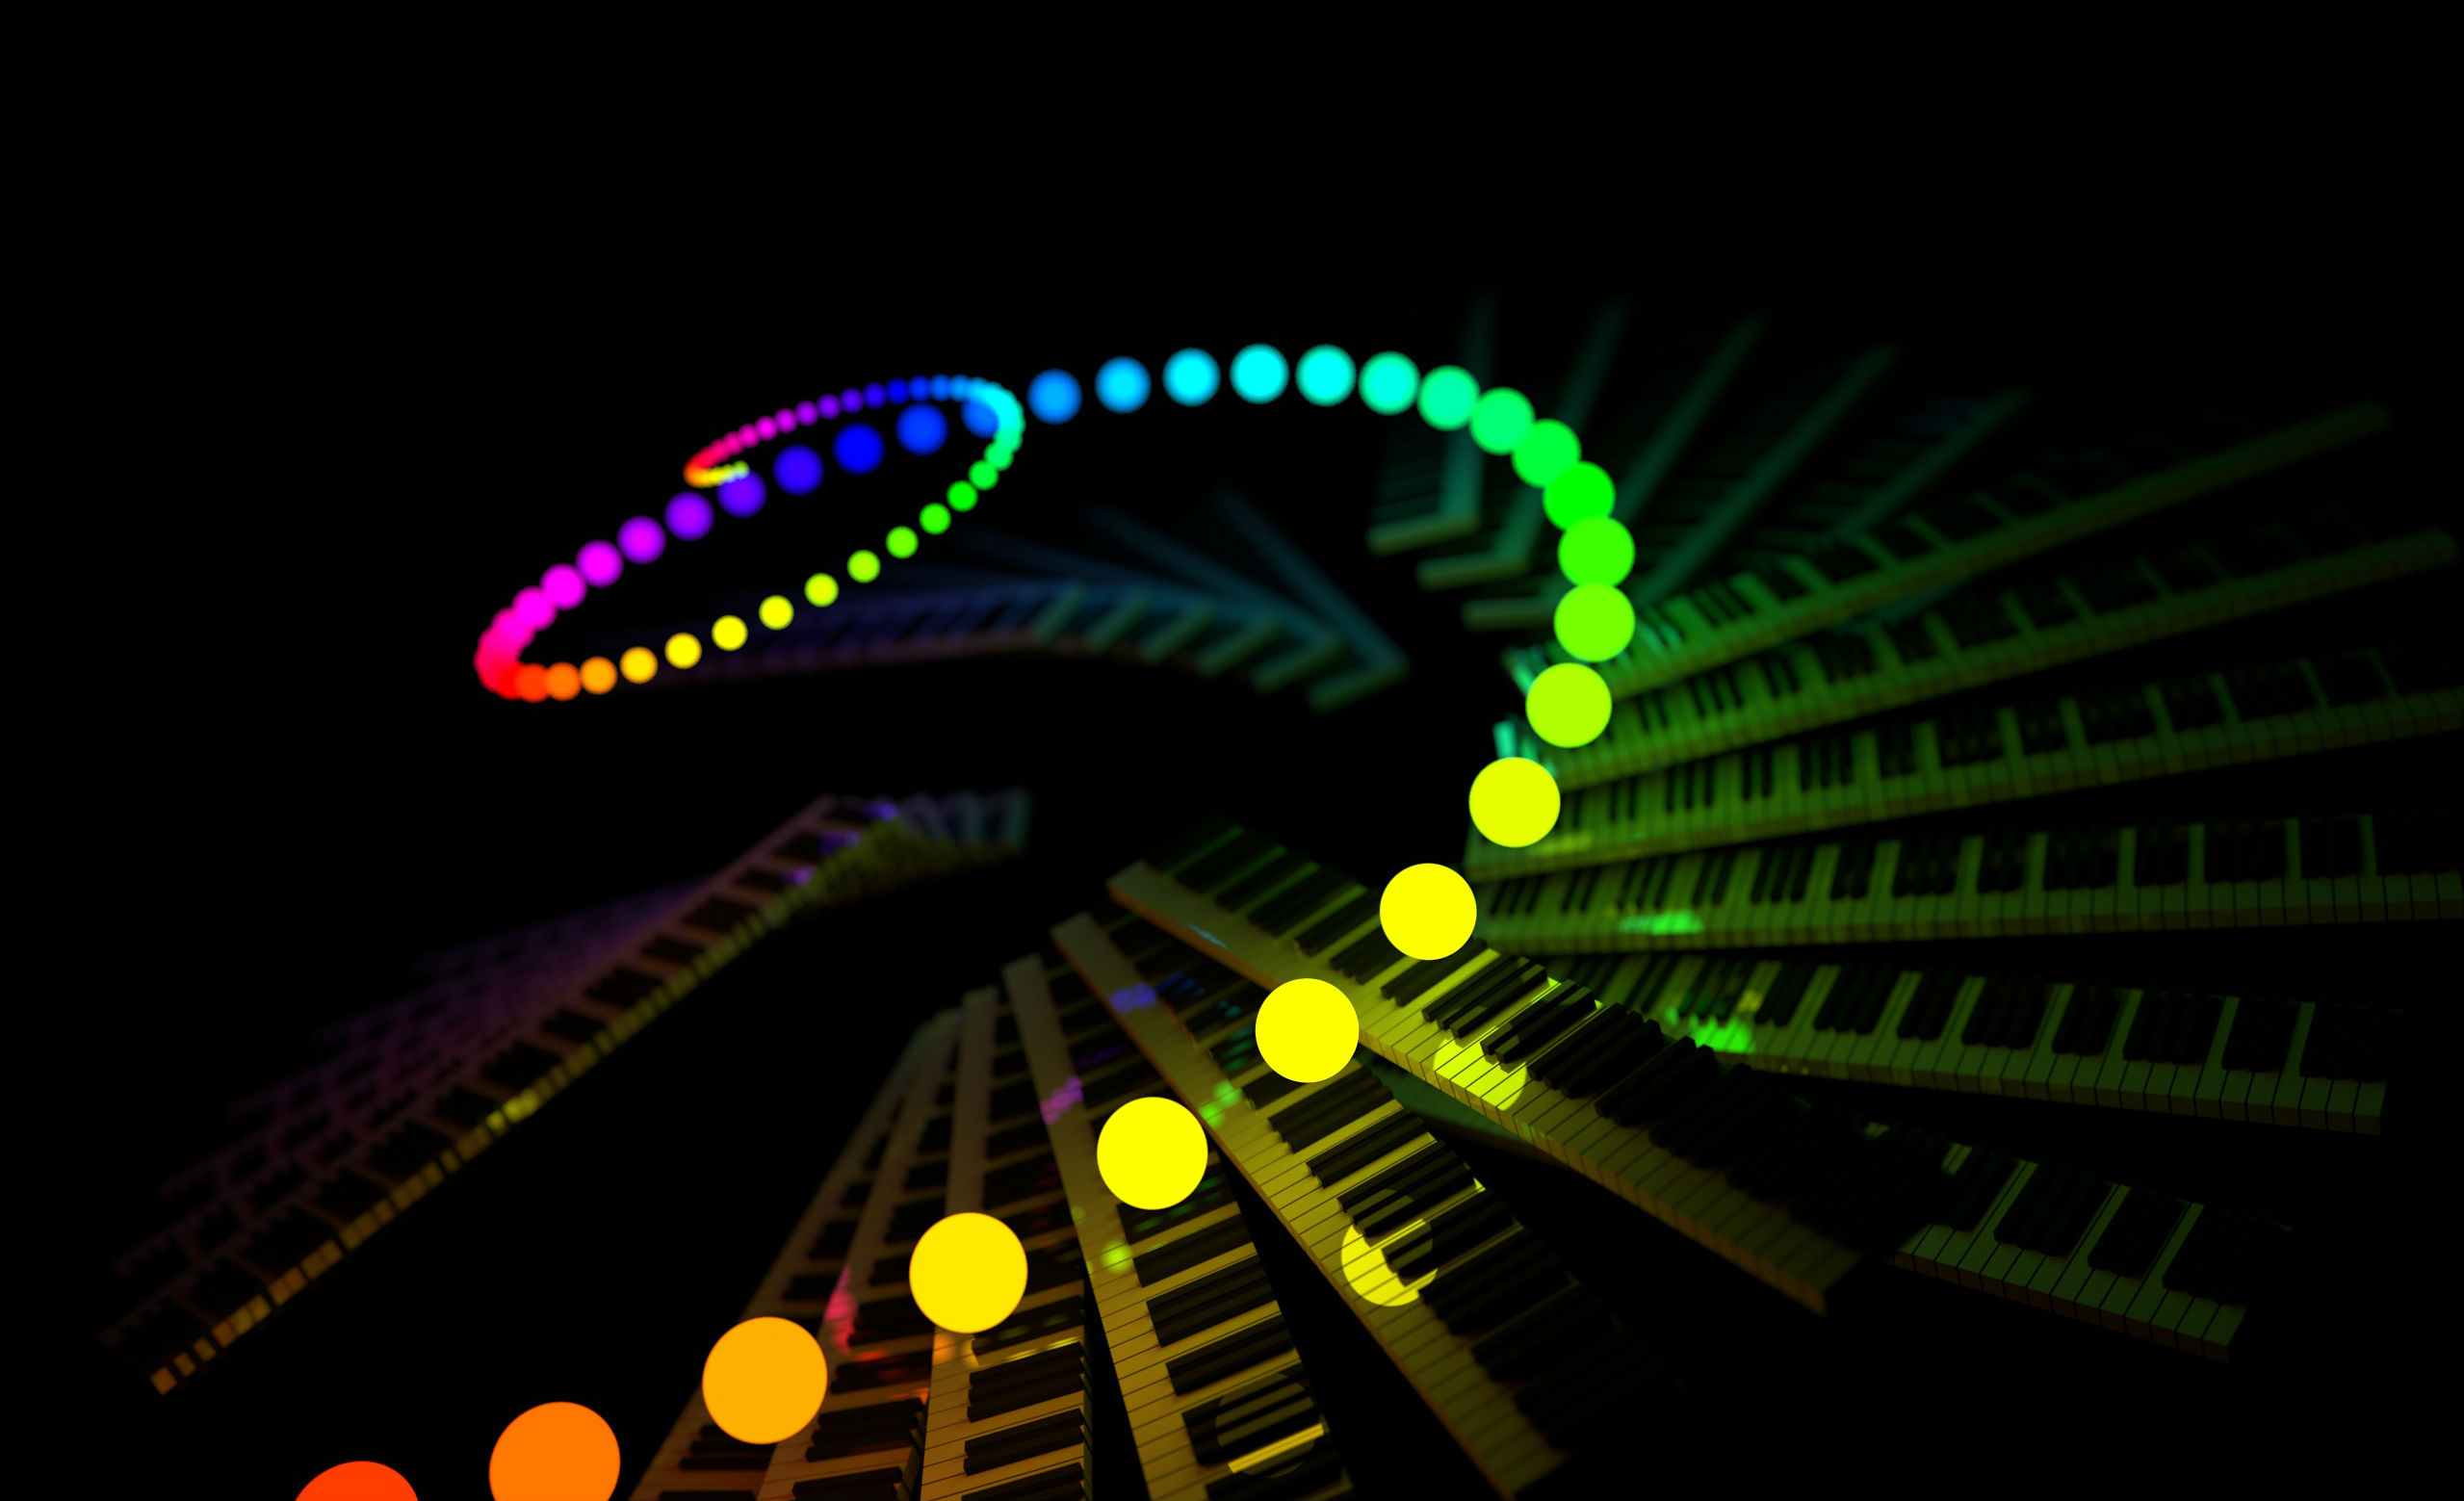 Artistic full hd wallpaper and background image for Luces de colores